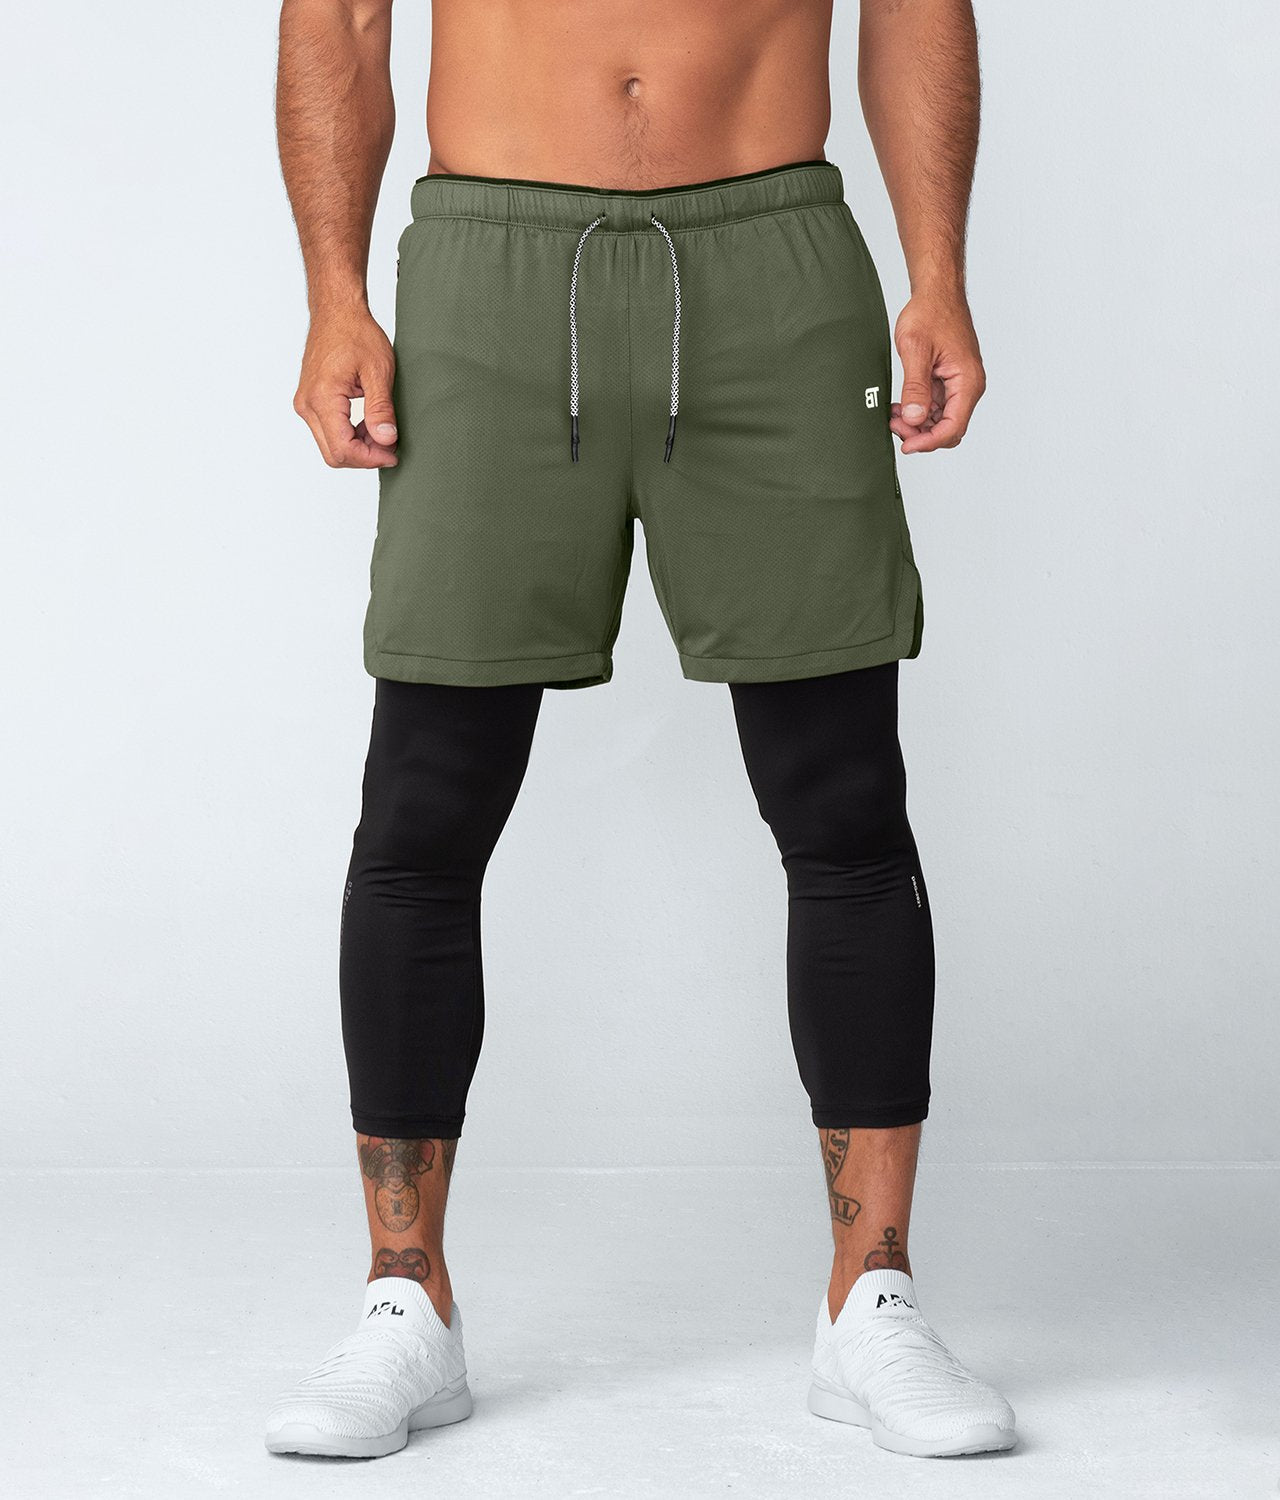 Born Tough United Kingdom Air Pro™ Men's Dual-Layered Gym Workout Shorts With Legging Liner Military Green